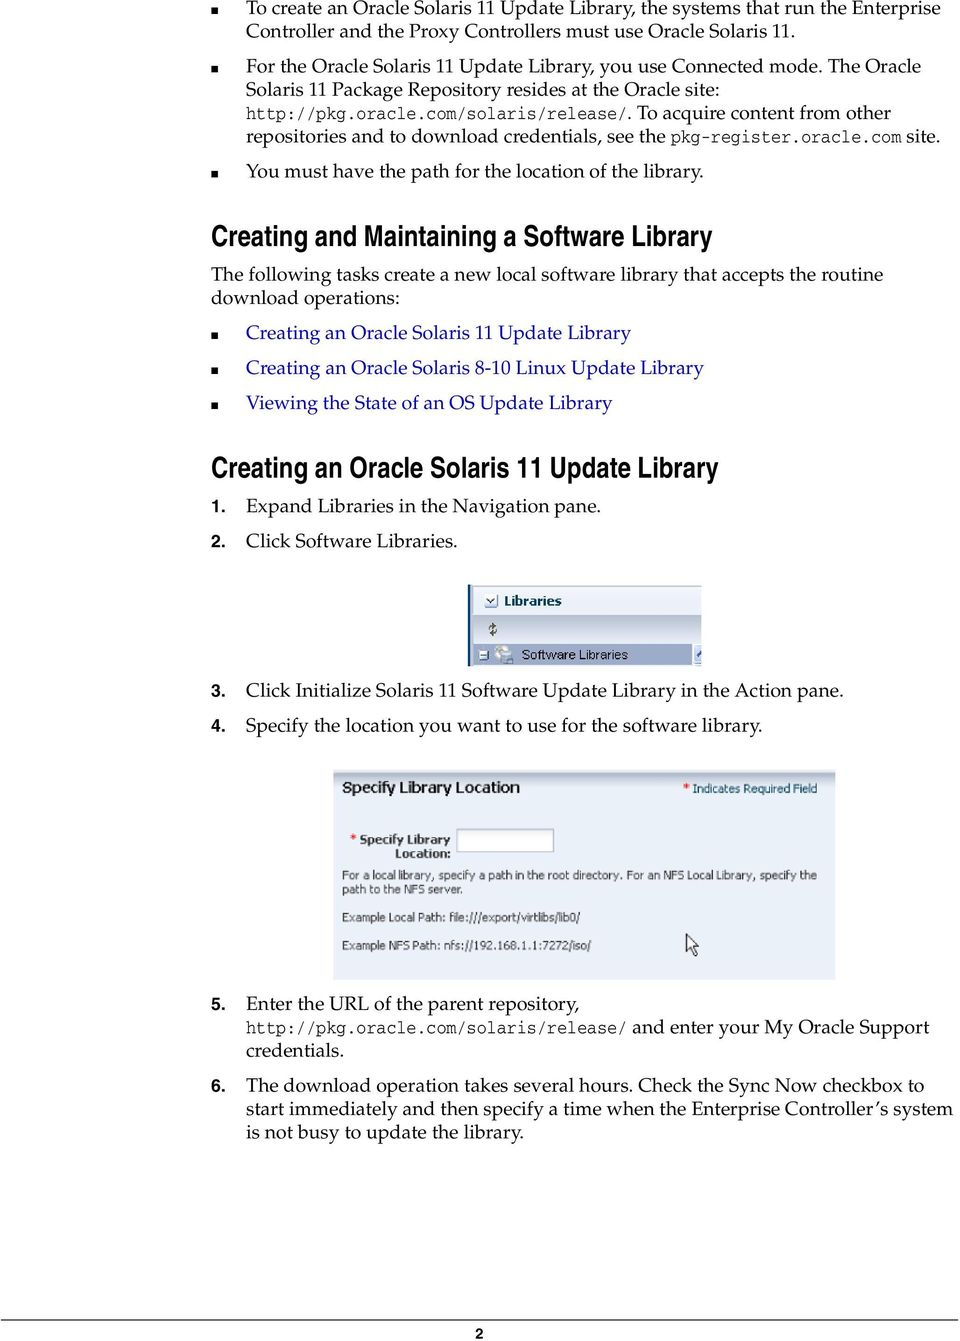 To acquire content from other repositories and to download credentials, see the pkg-register.oracle.com site. You must have the path for the location of the library.